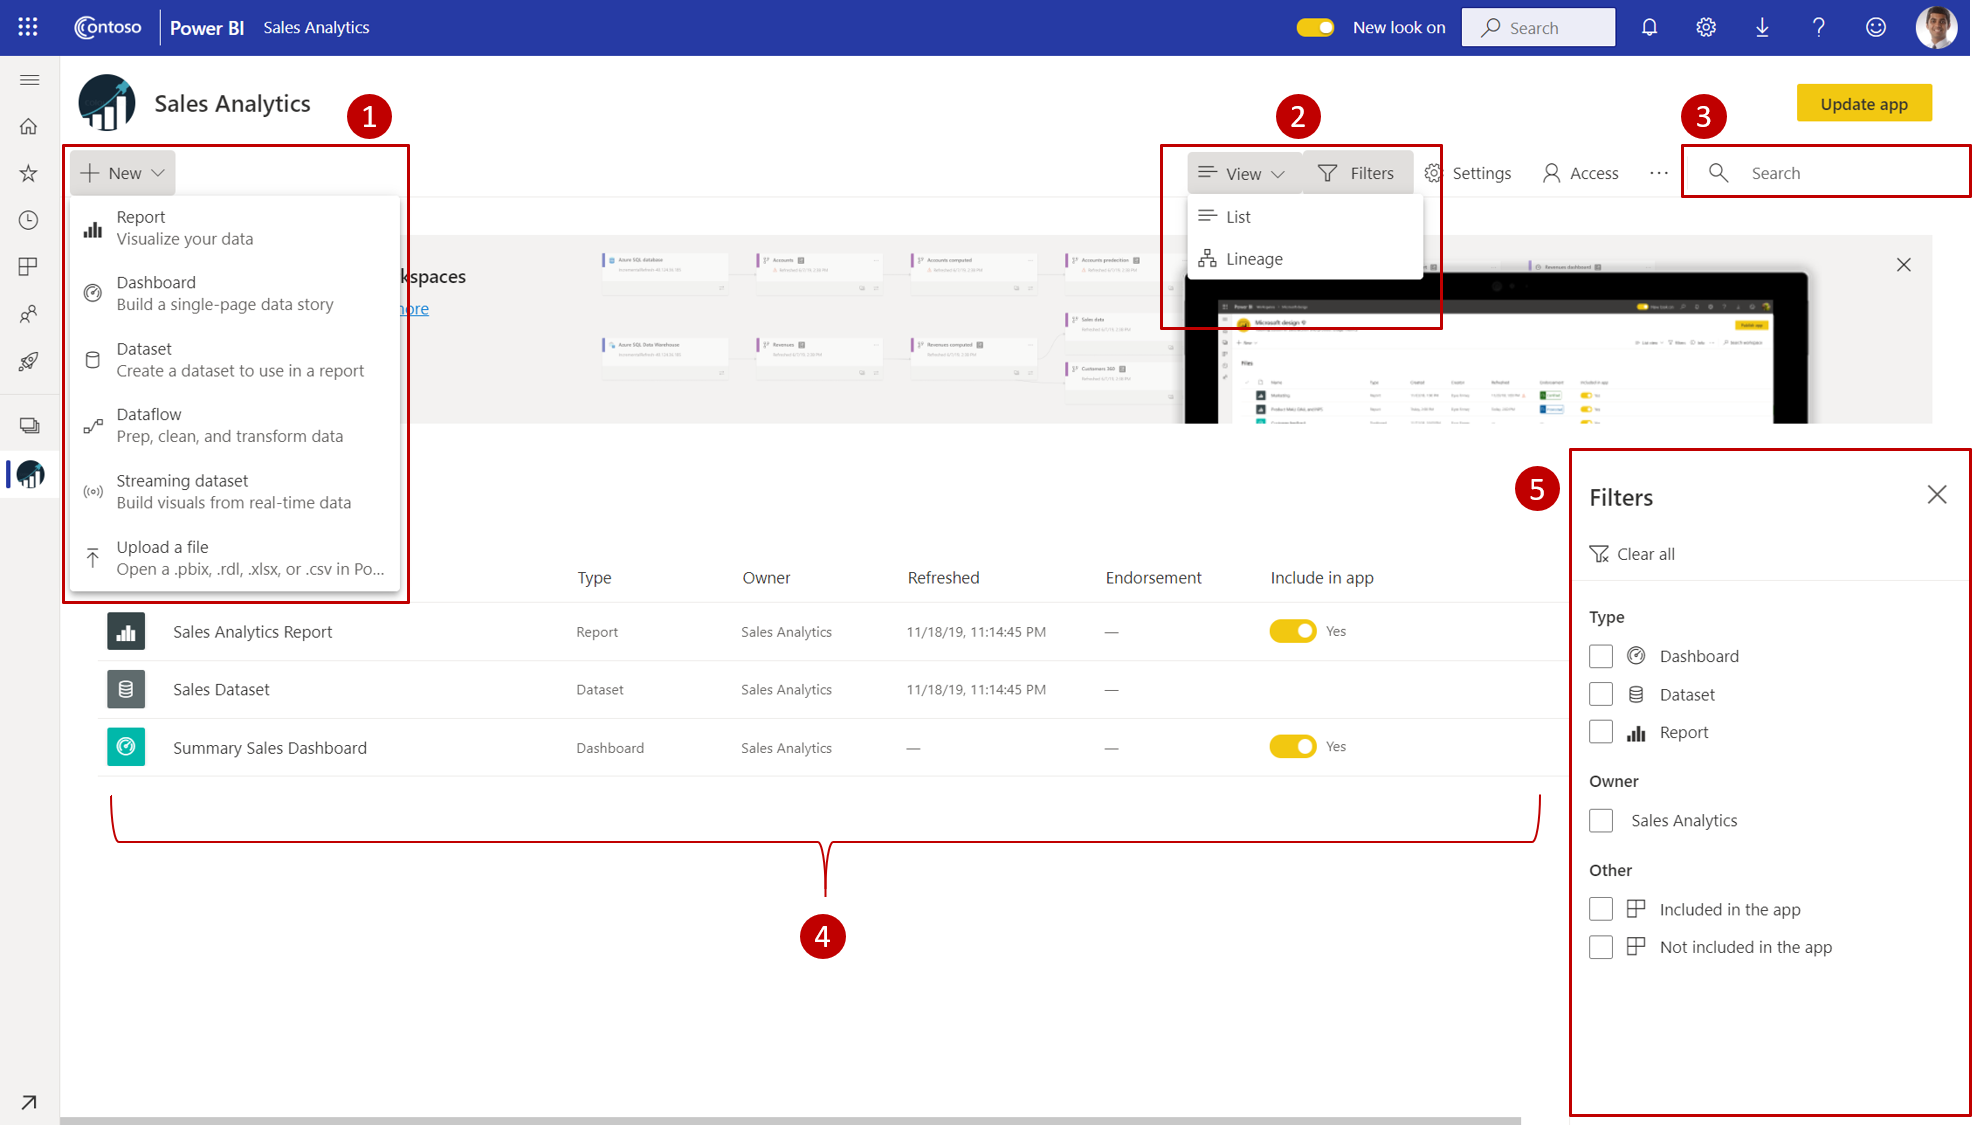 Introducing the new look of workspaces in the Power BI service